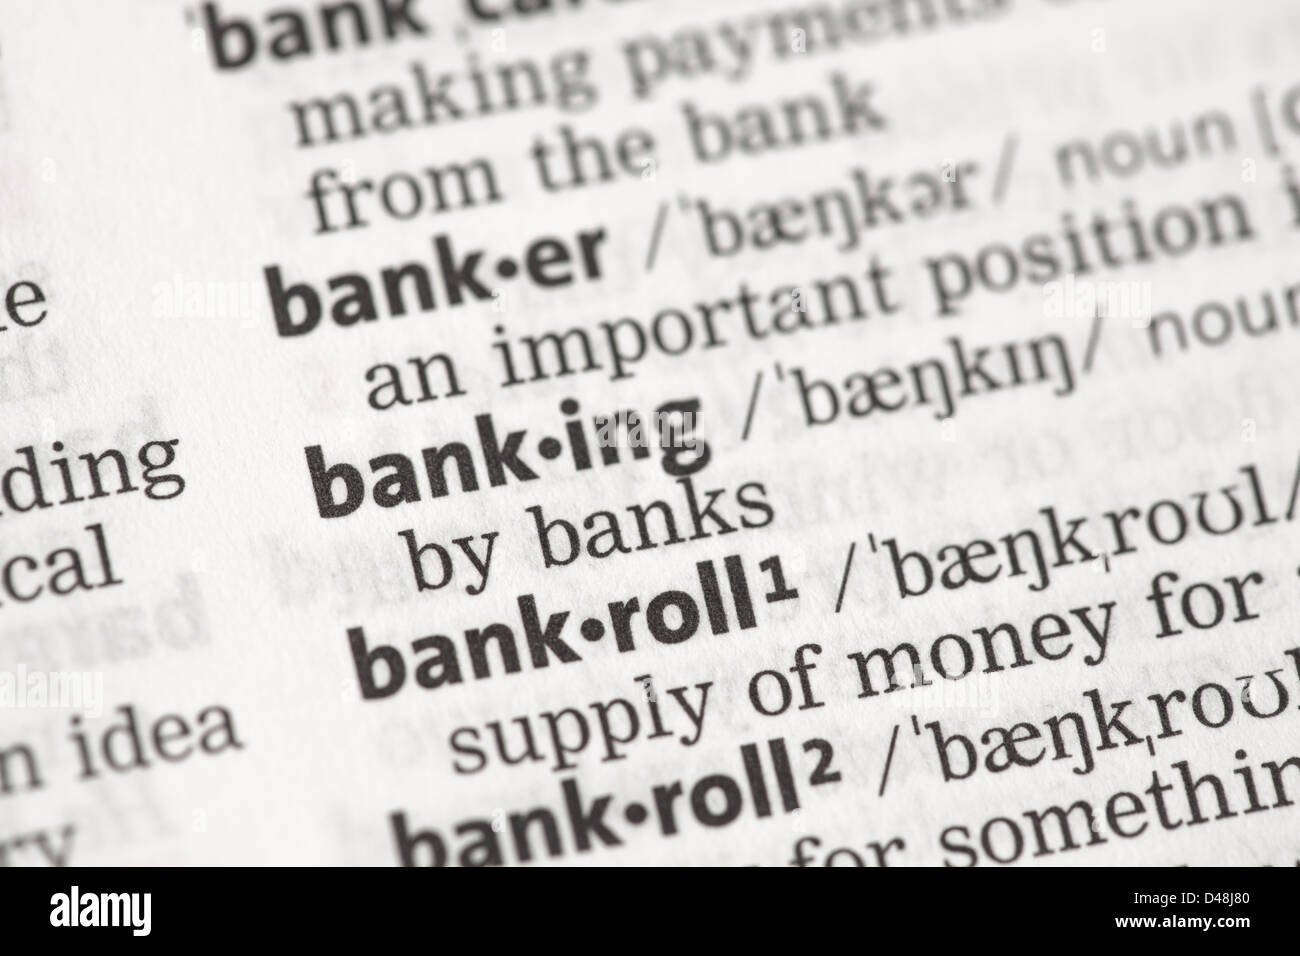 Banking definition - Stock Image